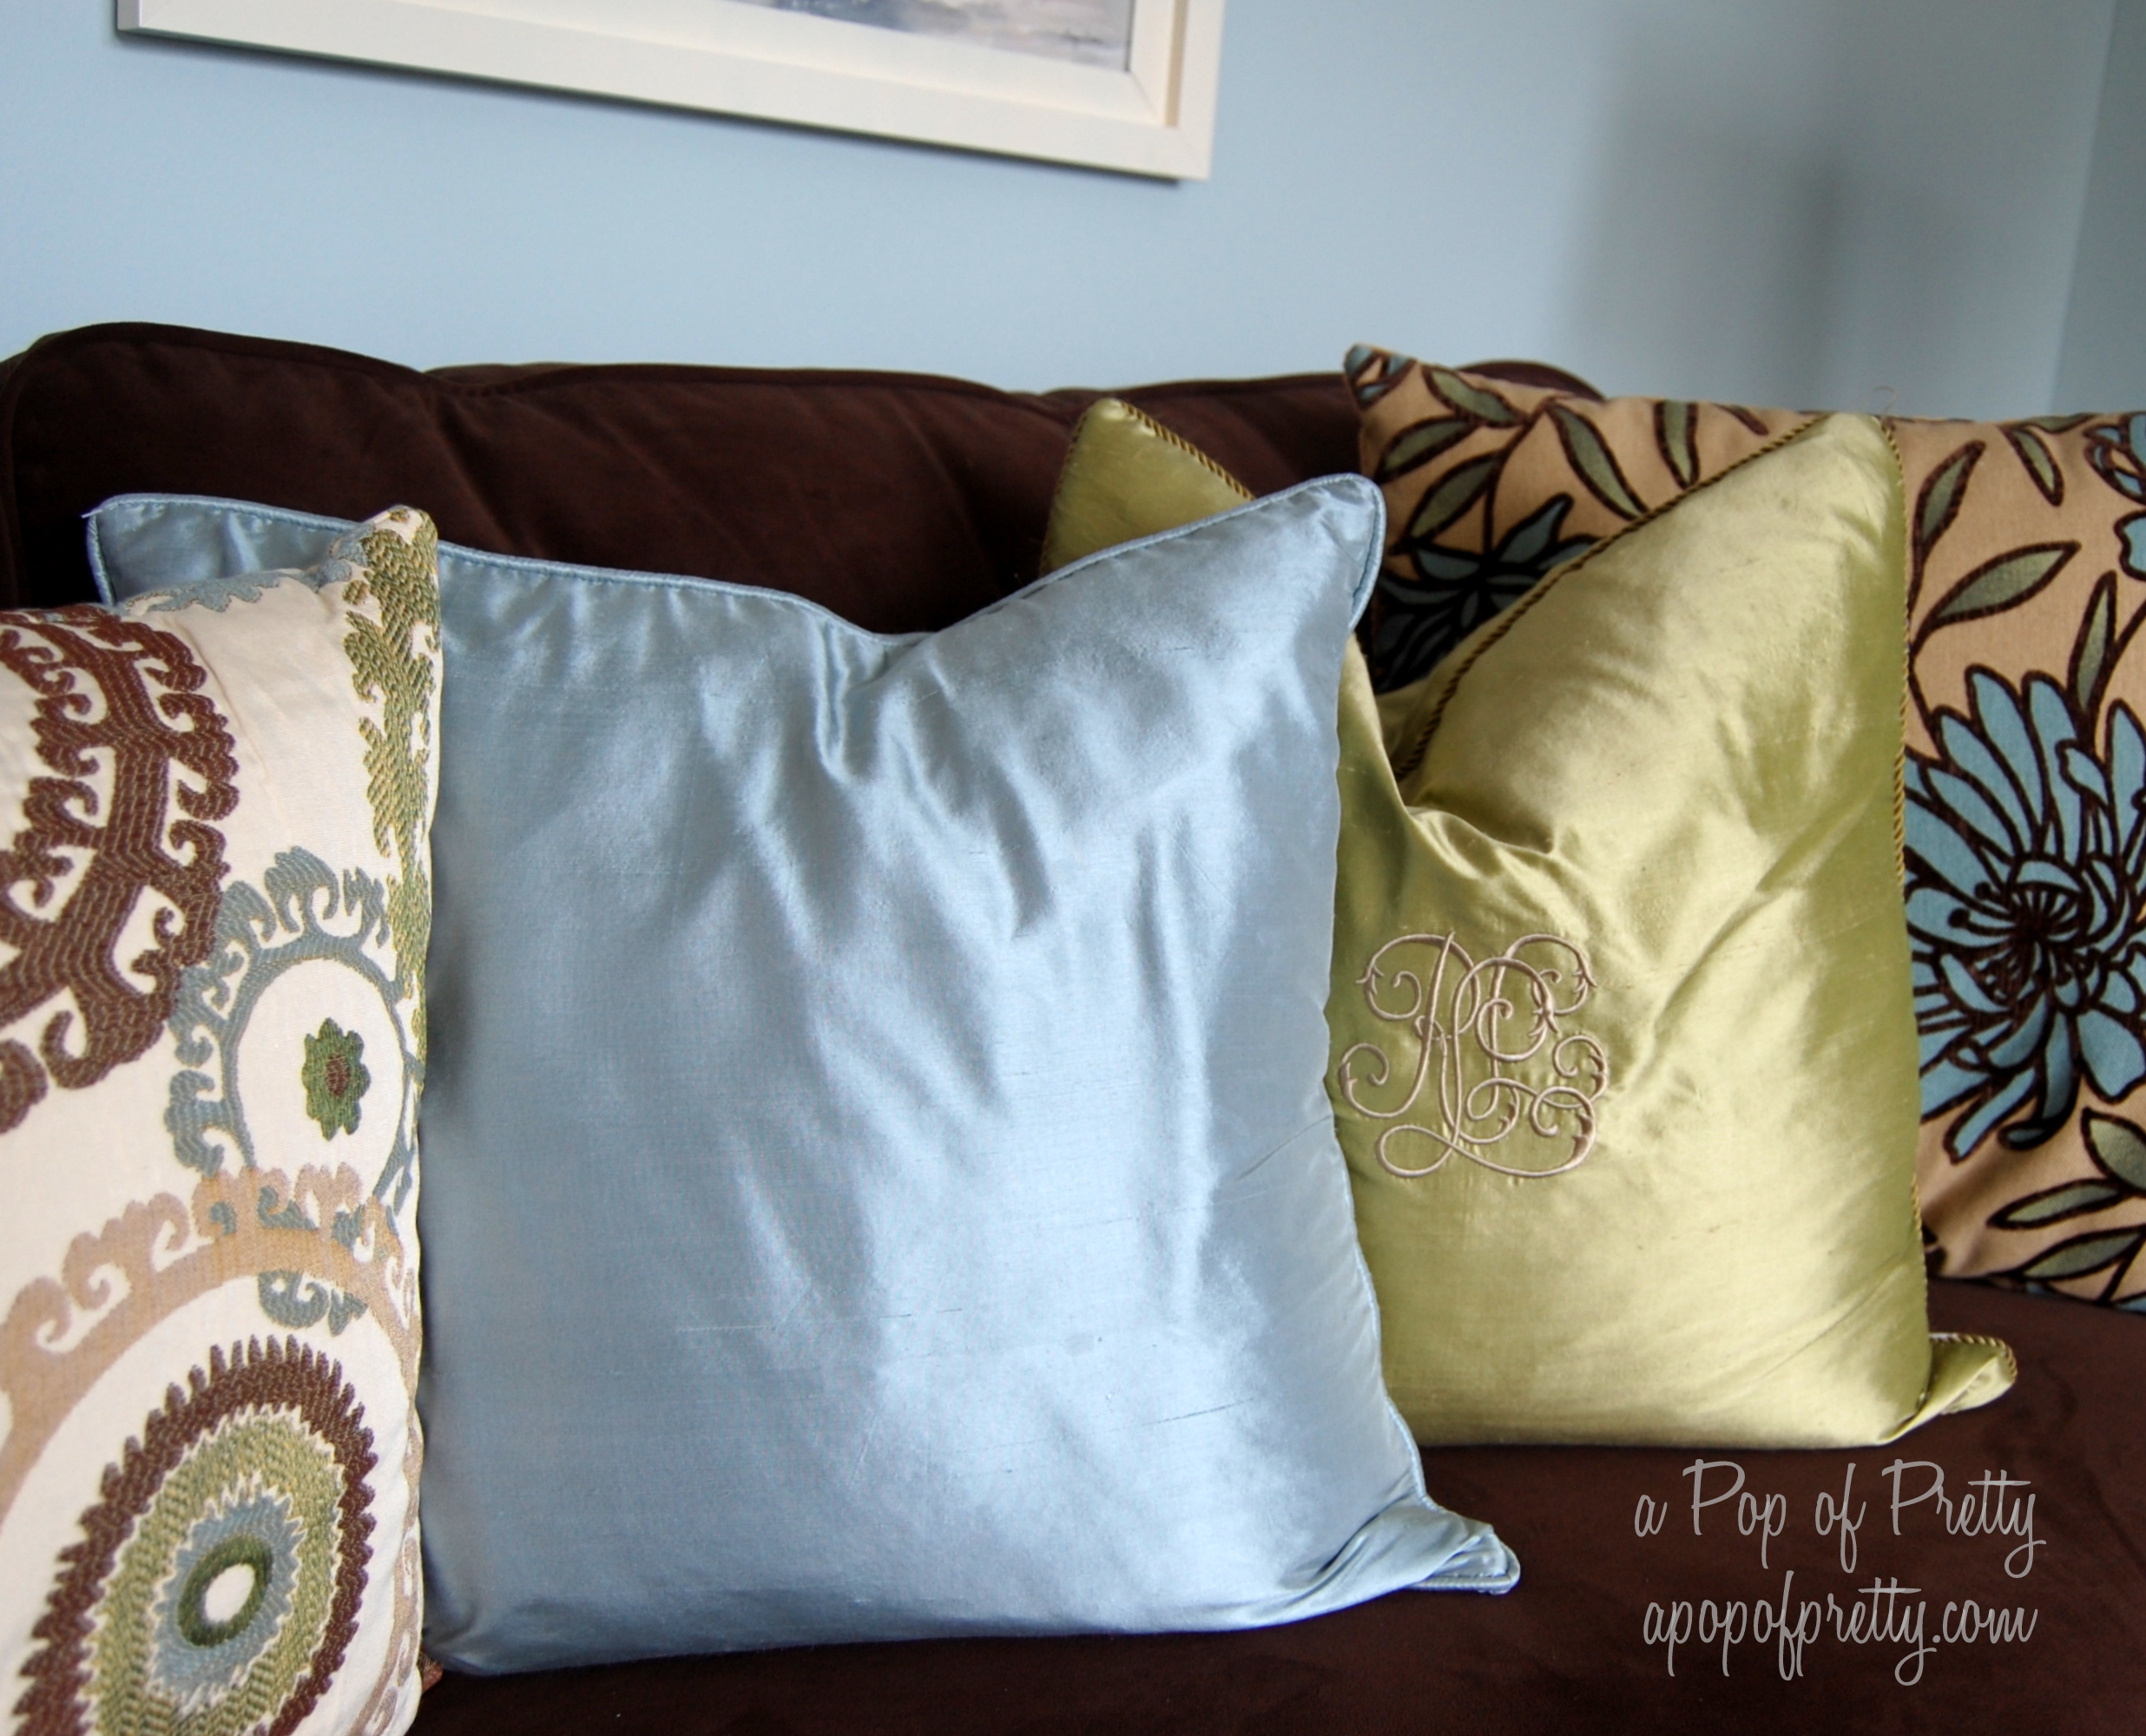 Brown blue living room decor a pop of pretty blog for Blue brown living room decor